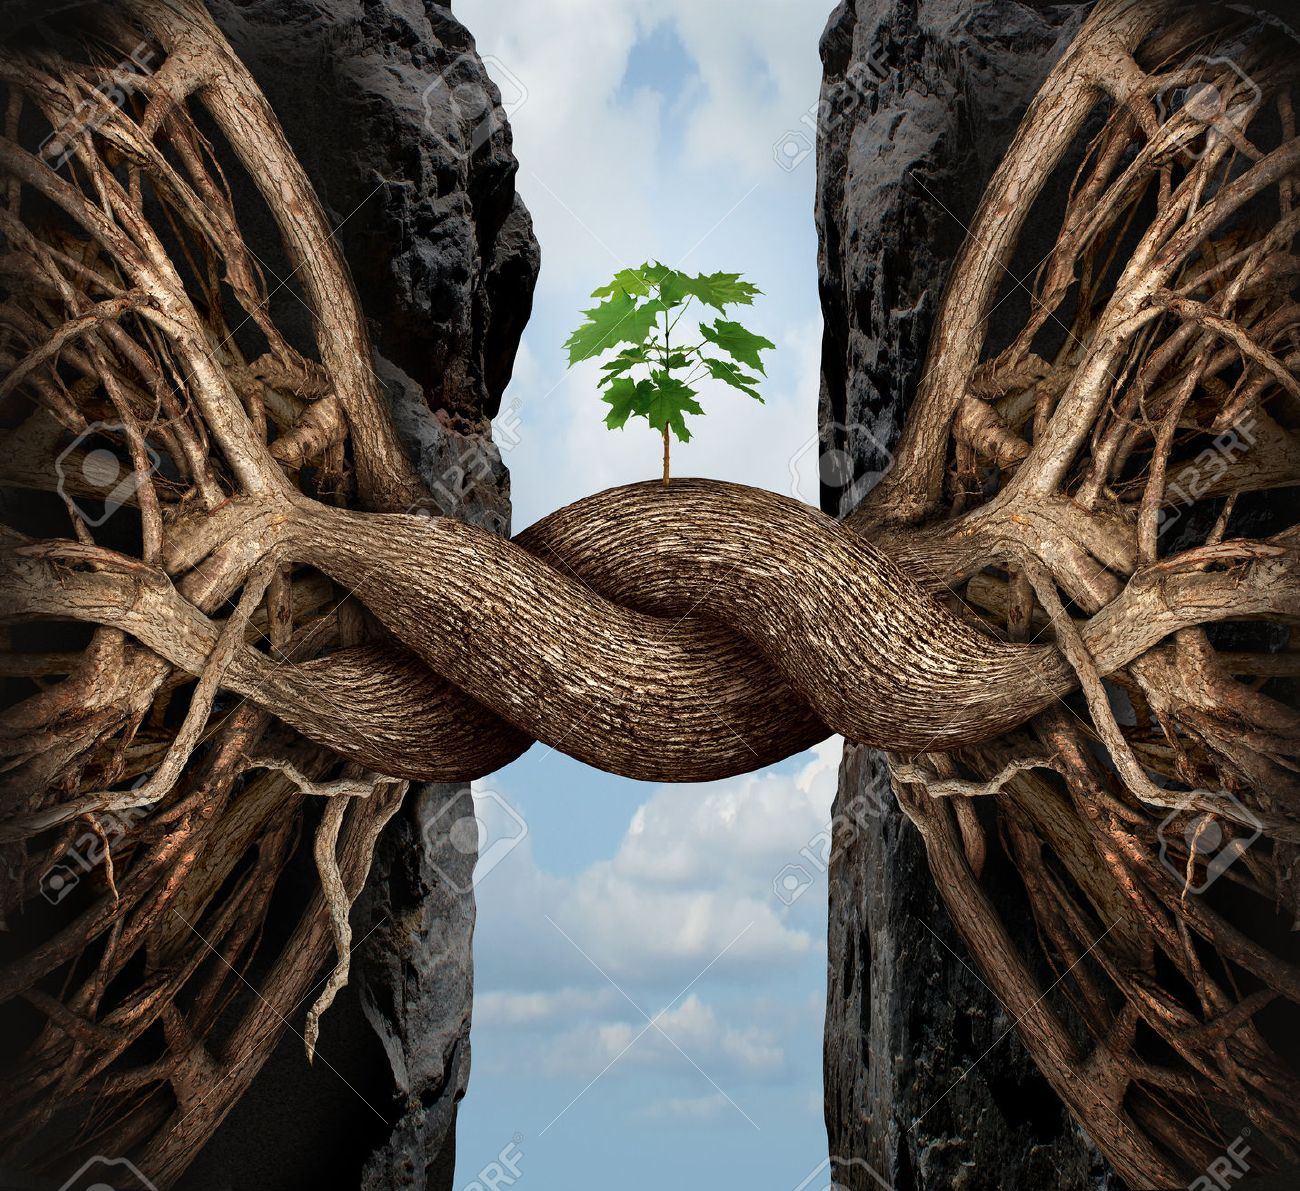 Paulowniaangola-unity-growth-concept-and-bridge-the-gap-business-symbol-as-two-tree-roots-on-a-high-steep-cliff-conn